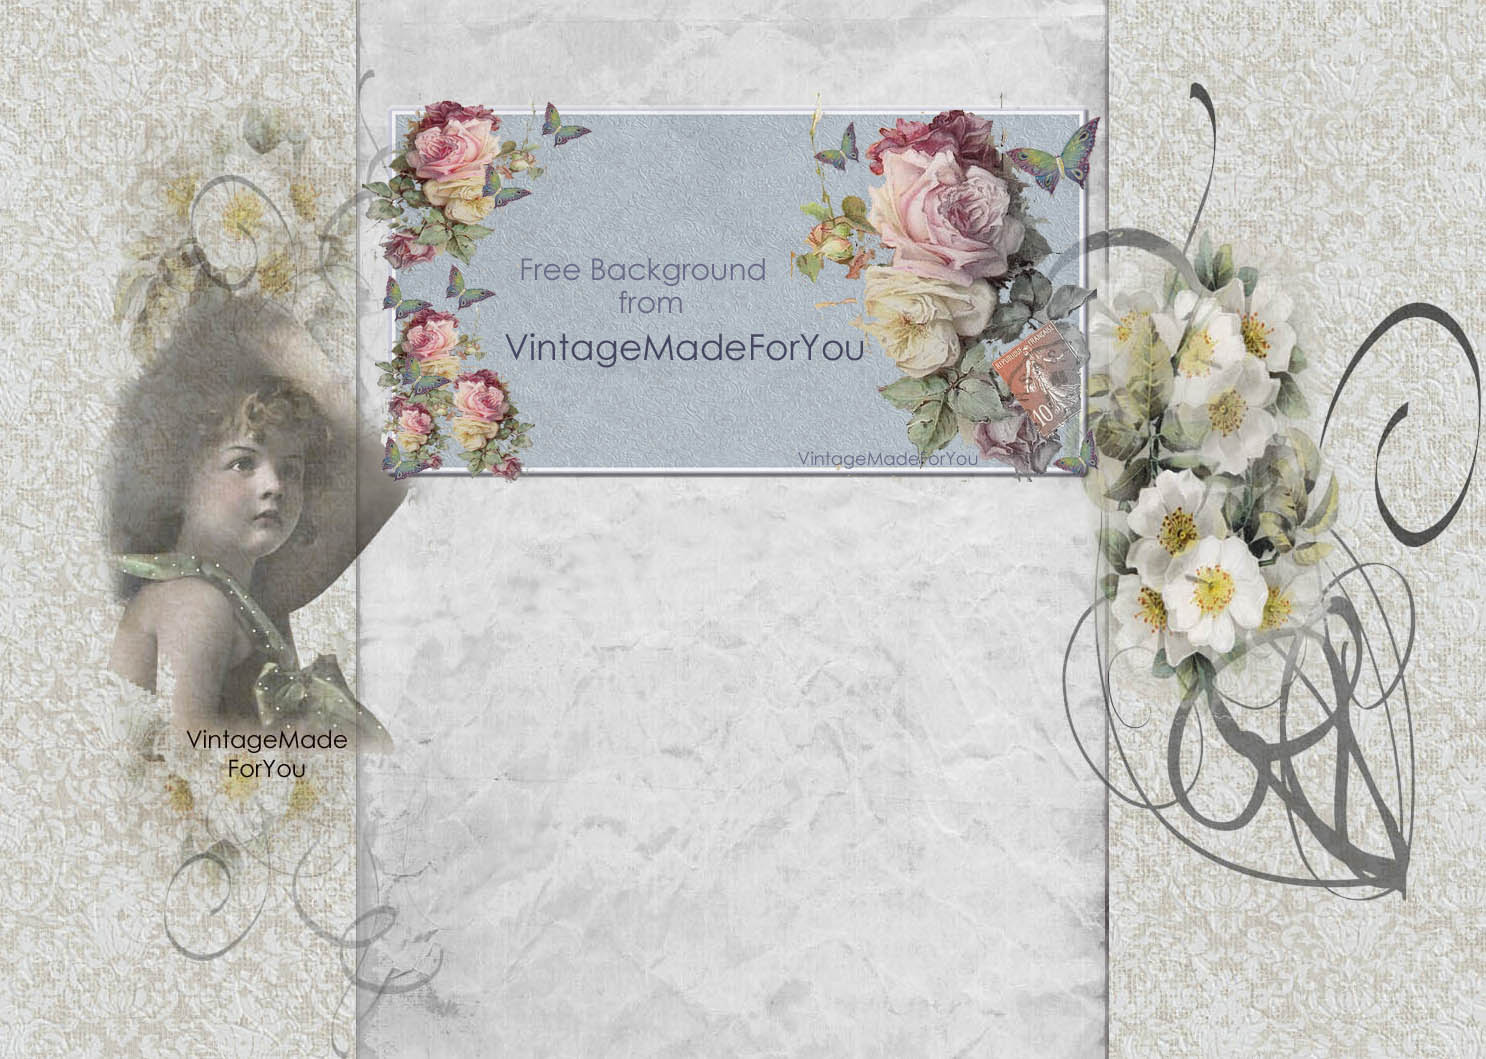 vintagemadeforyou free background to blogger 2 columns shabby chic and vintage girl. Black Bedroom Furniture Sets. Home Design Ideas